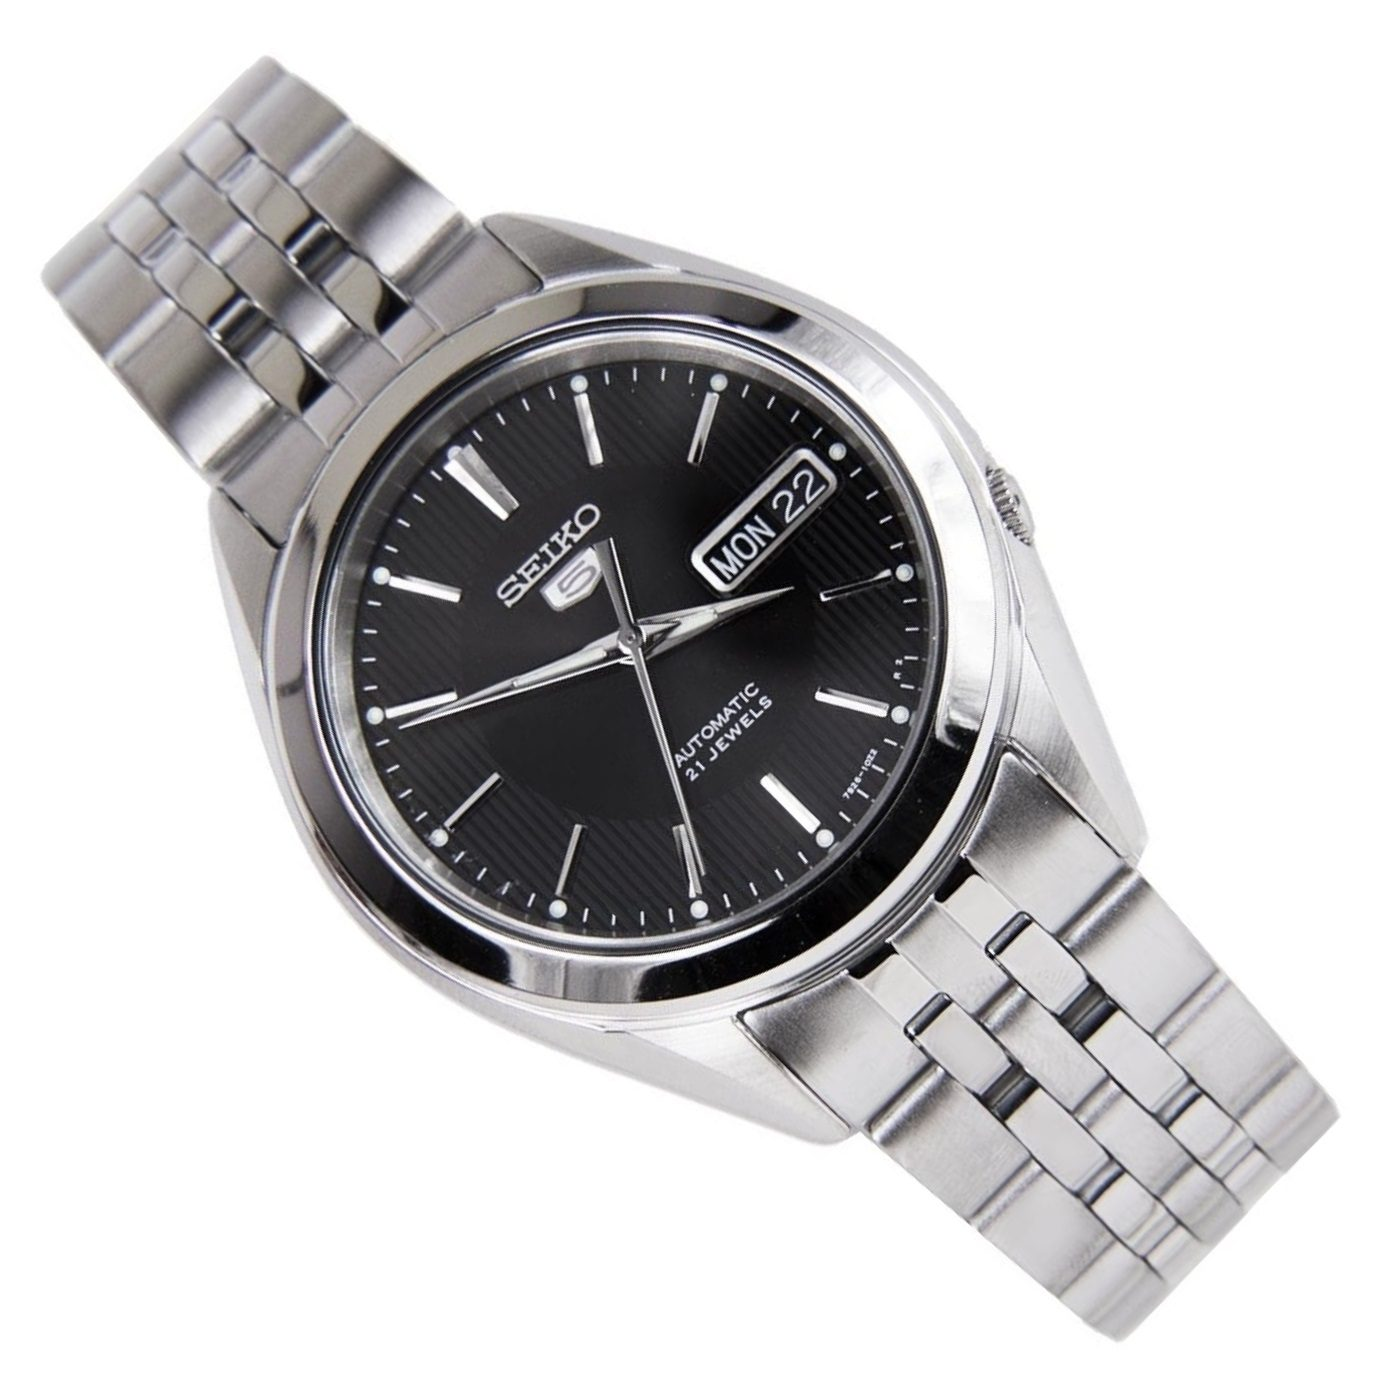 Seiko 5 Snkl23 21 Jewels Stainless Steel Casual Mens Automatic Watch